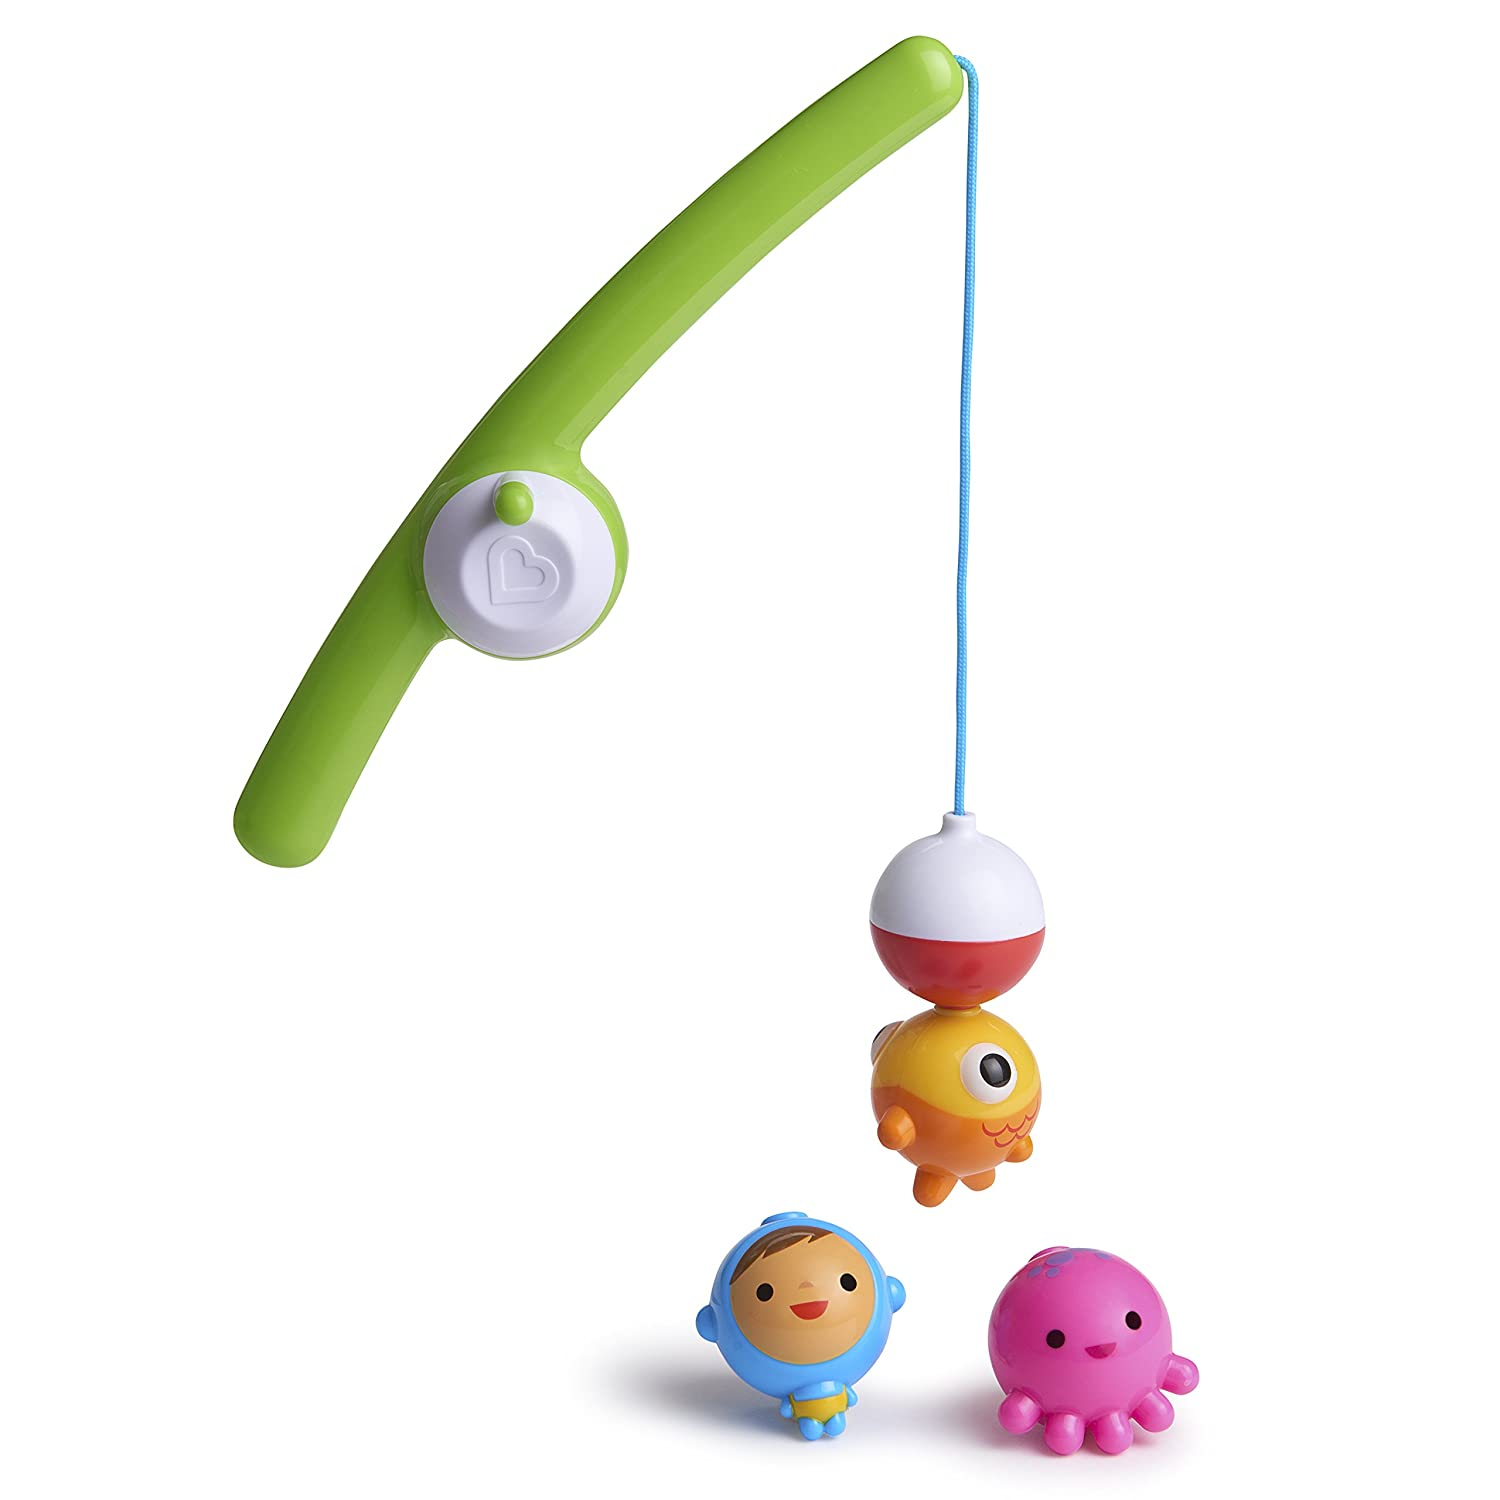 Top 10 Best Bath Toys For Toddlers (2020 Reviews) 7